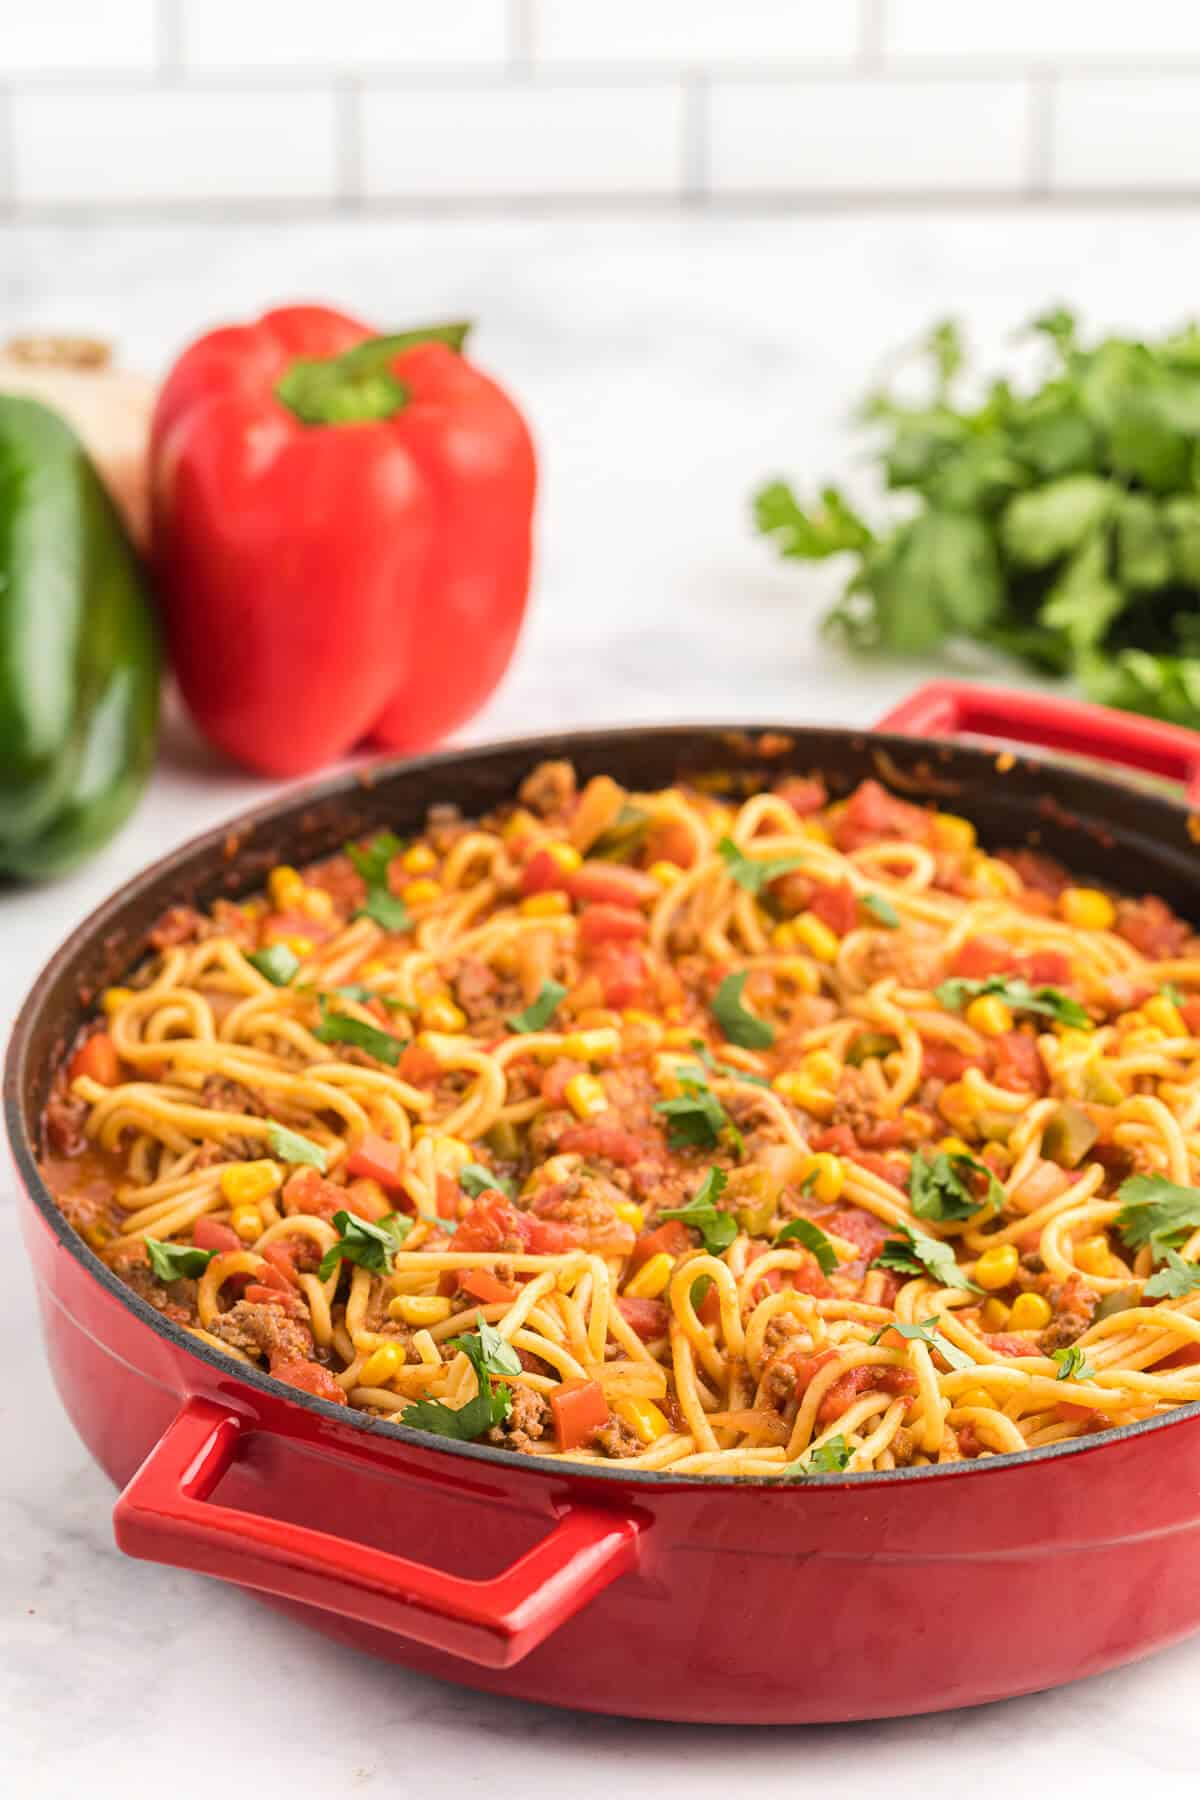 Mexican Spaghetti Recipe - This easy taco pasta recipe is filled with cheesy ground beef, taco seasoning, peppers, corn, tomatoes and noodles. It's simple to make with just the right amount of spice. The perfect family dinner recipe.